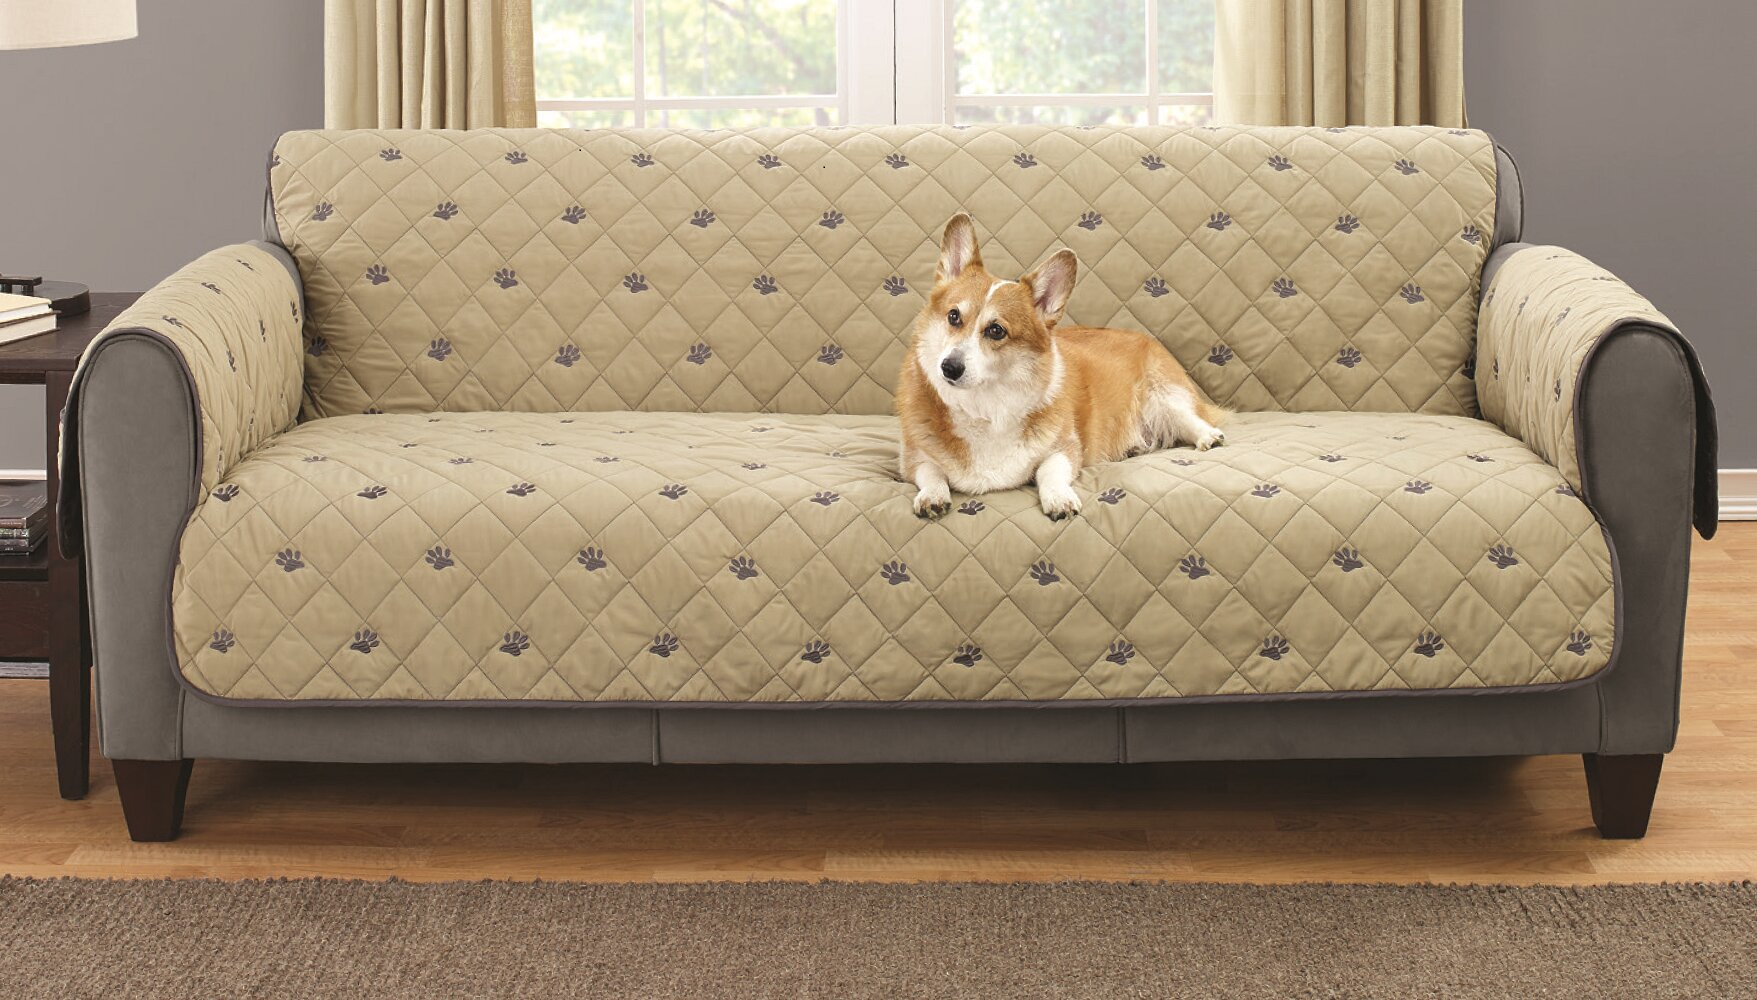 South Bay Sofa Embroidered Furniture Pet Protector With Non Slip Backing Reviews Wayfair